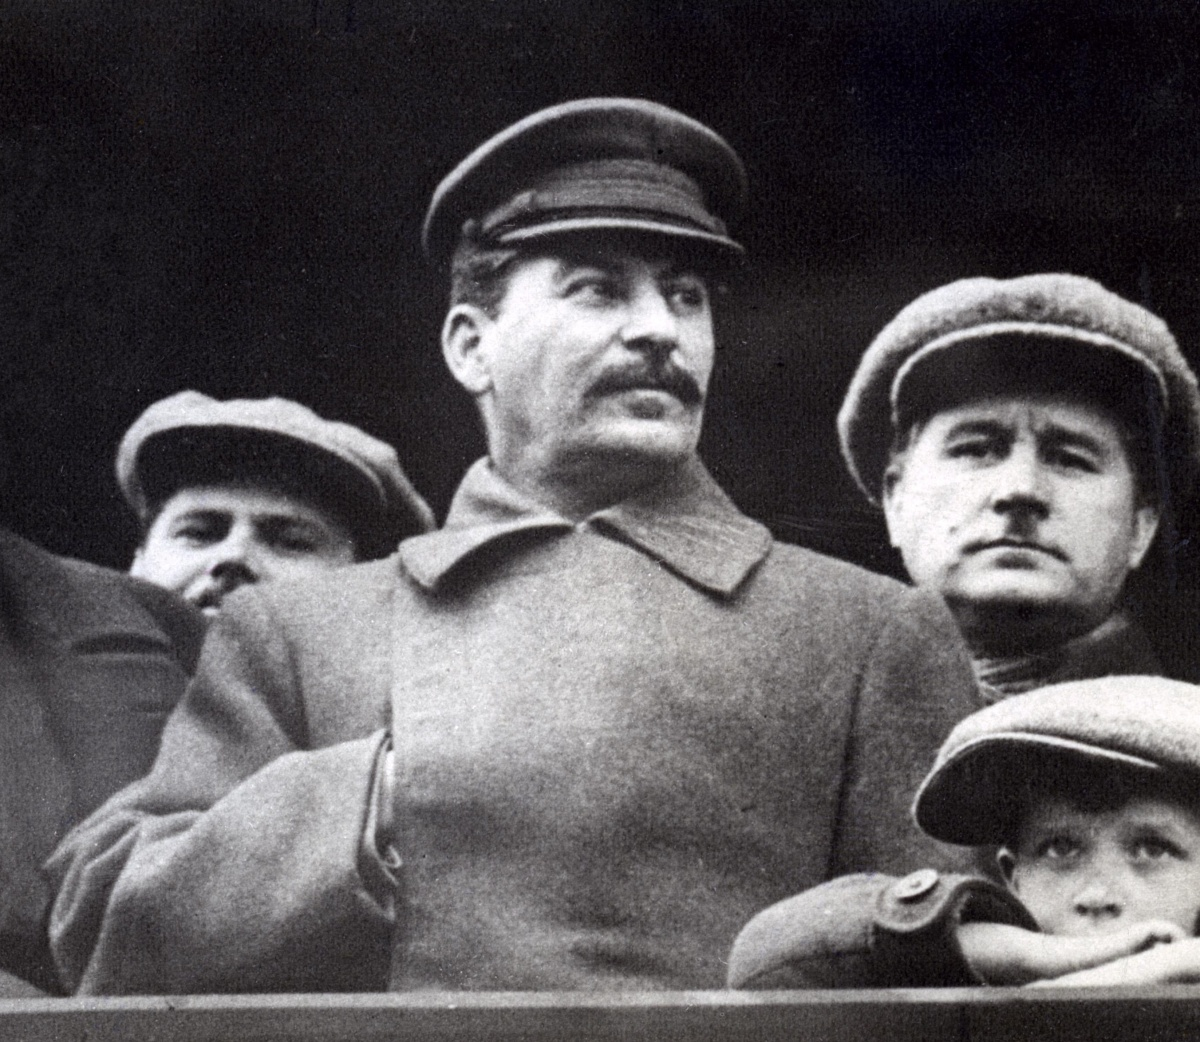 What do we really know about Joseph Stalin?